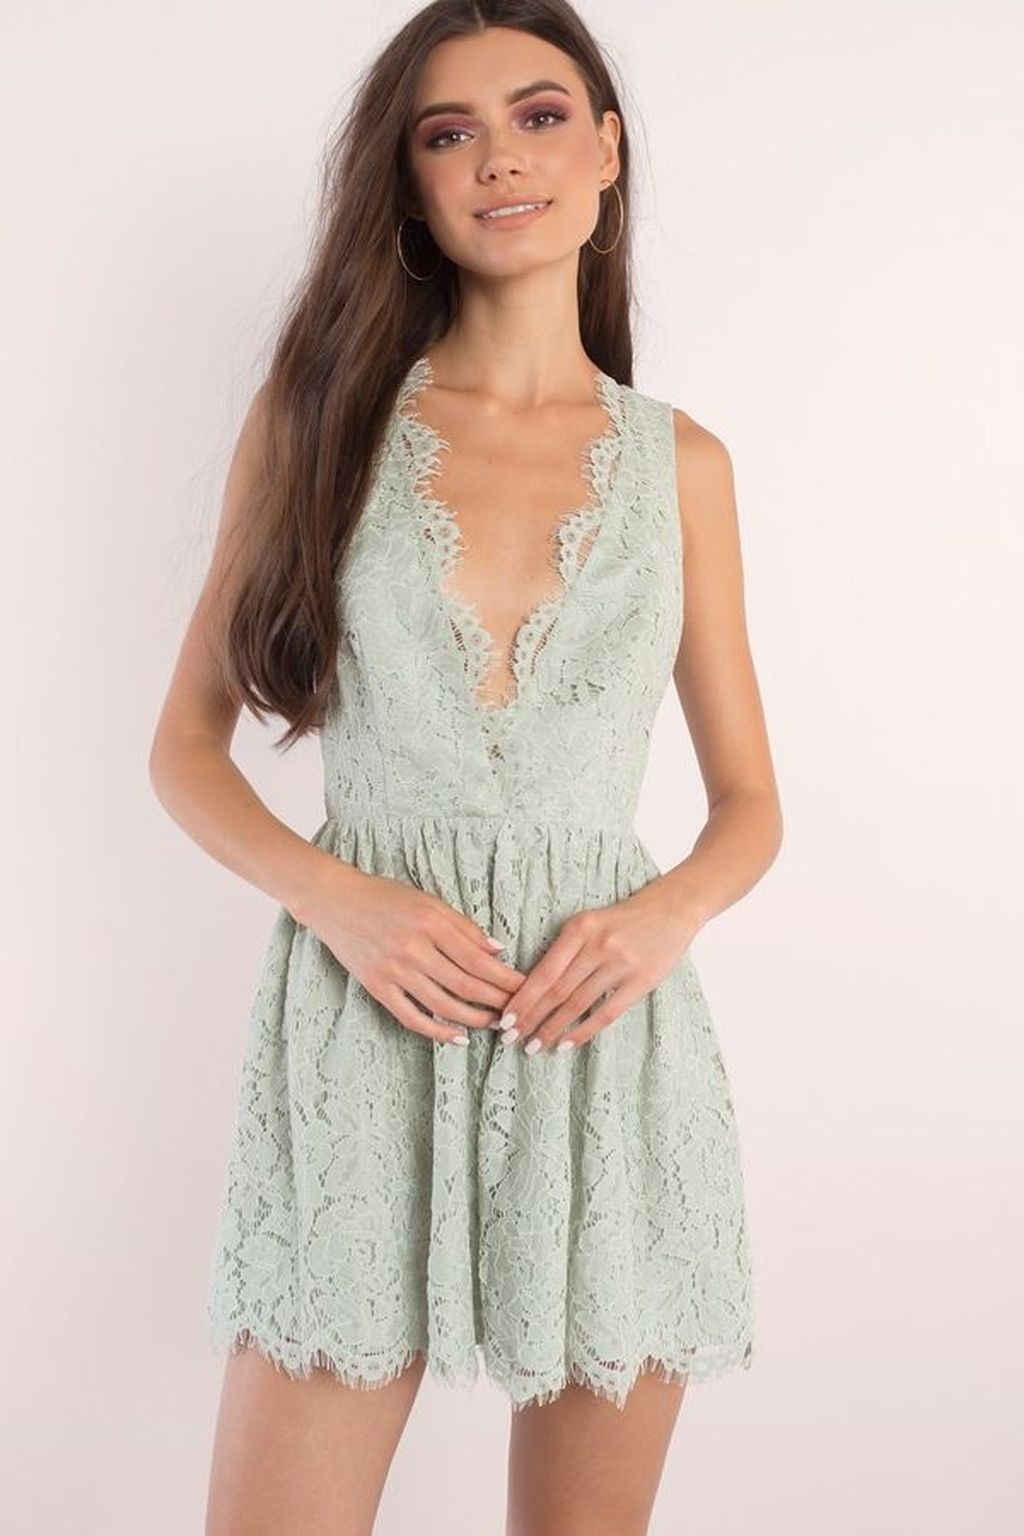 Fascinating Scalloped Clothing Ideas For Summer Outfits